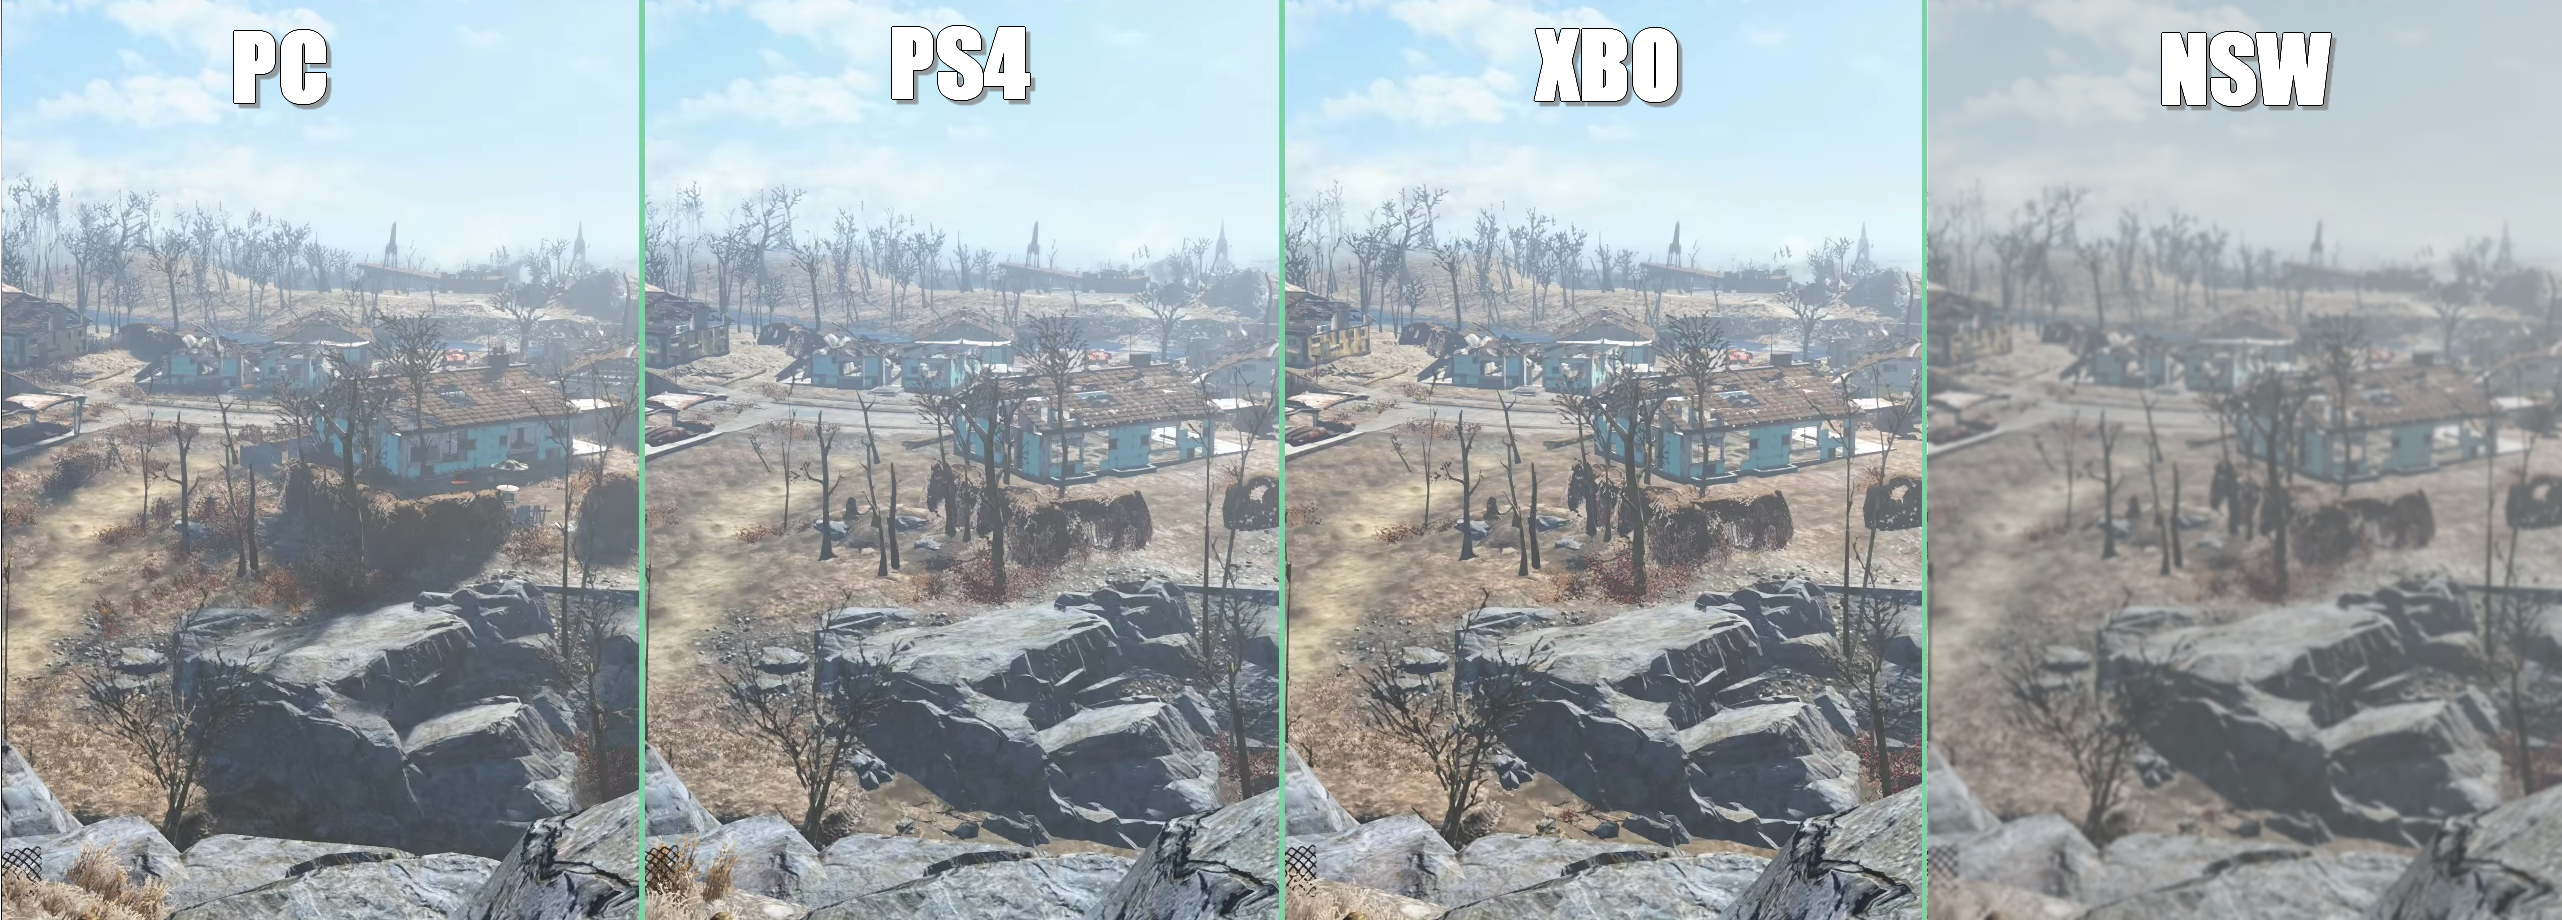 Le topic officiel de la XboxOne - Page 25 621019FALLOUTplatformcomparison